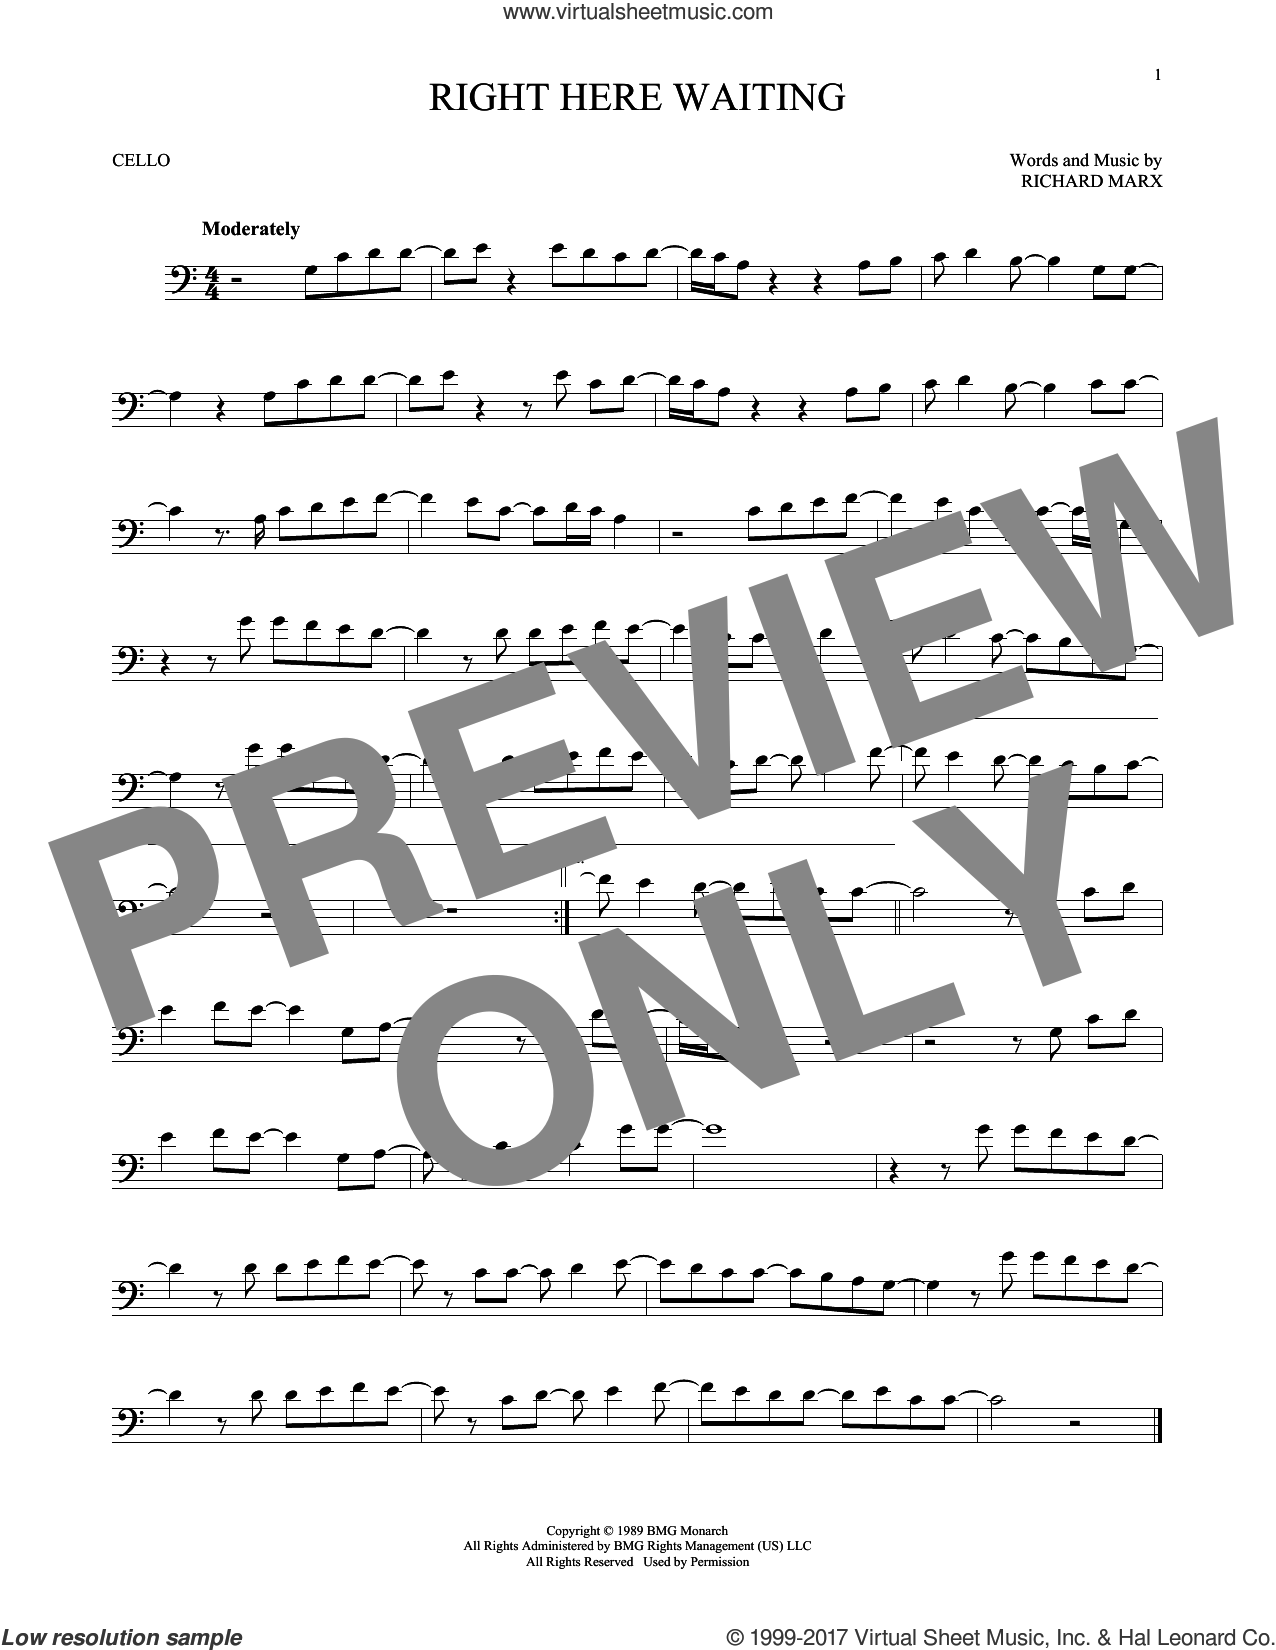 Right Here Waiting sheet music for cello solo by Richard Marx, intermediate skill level